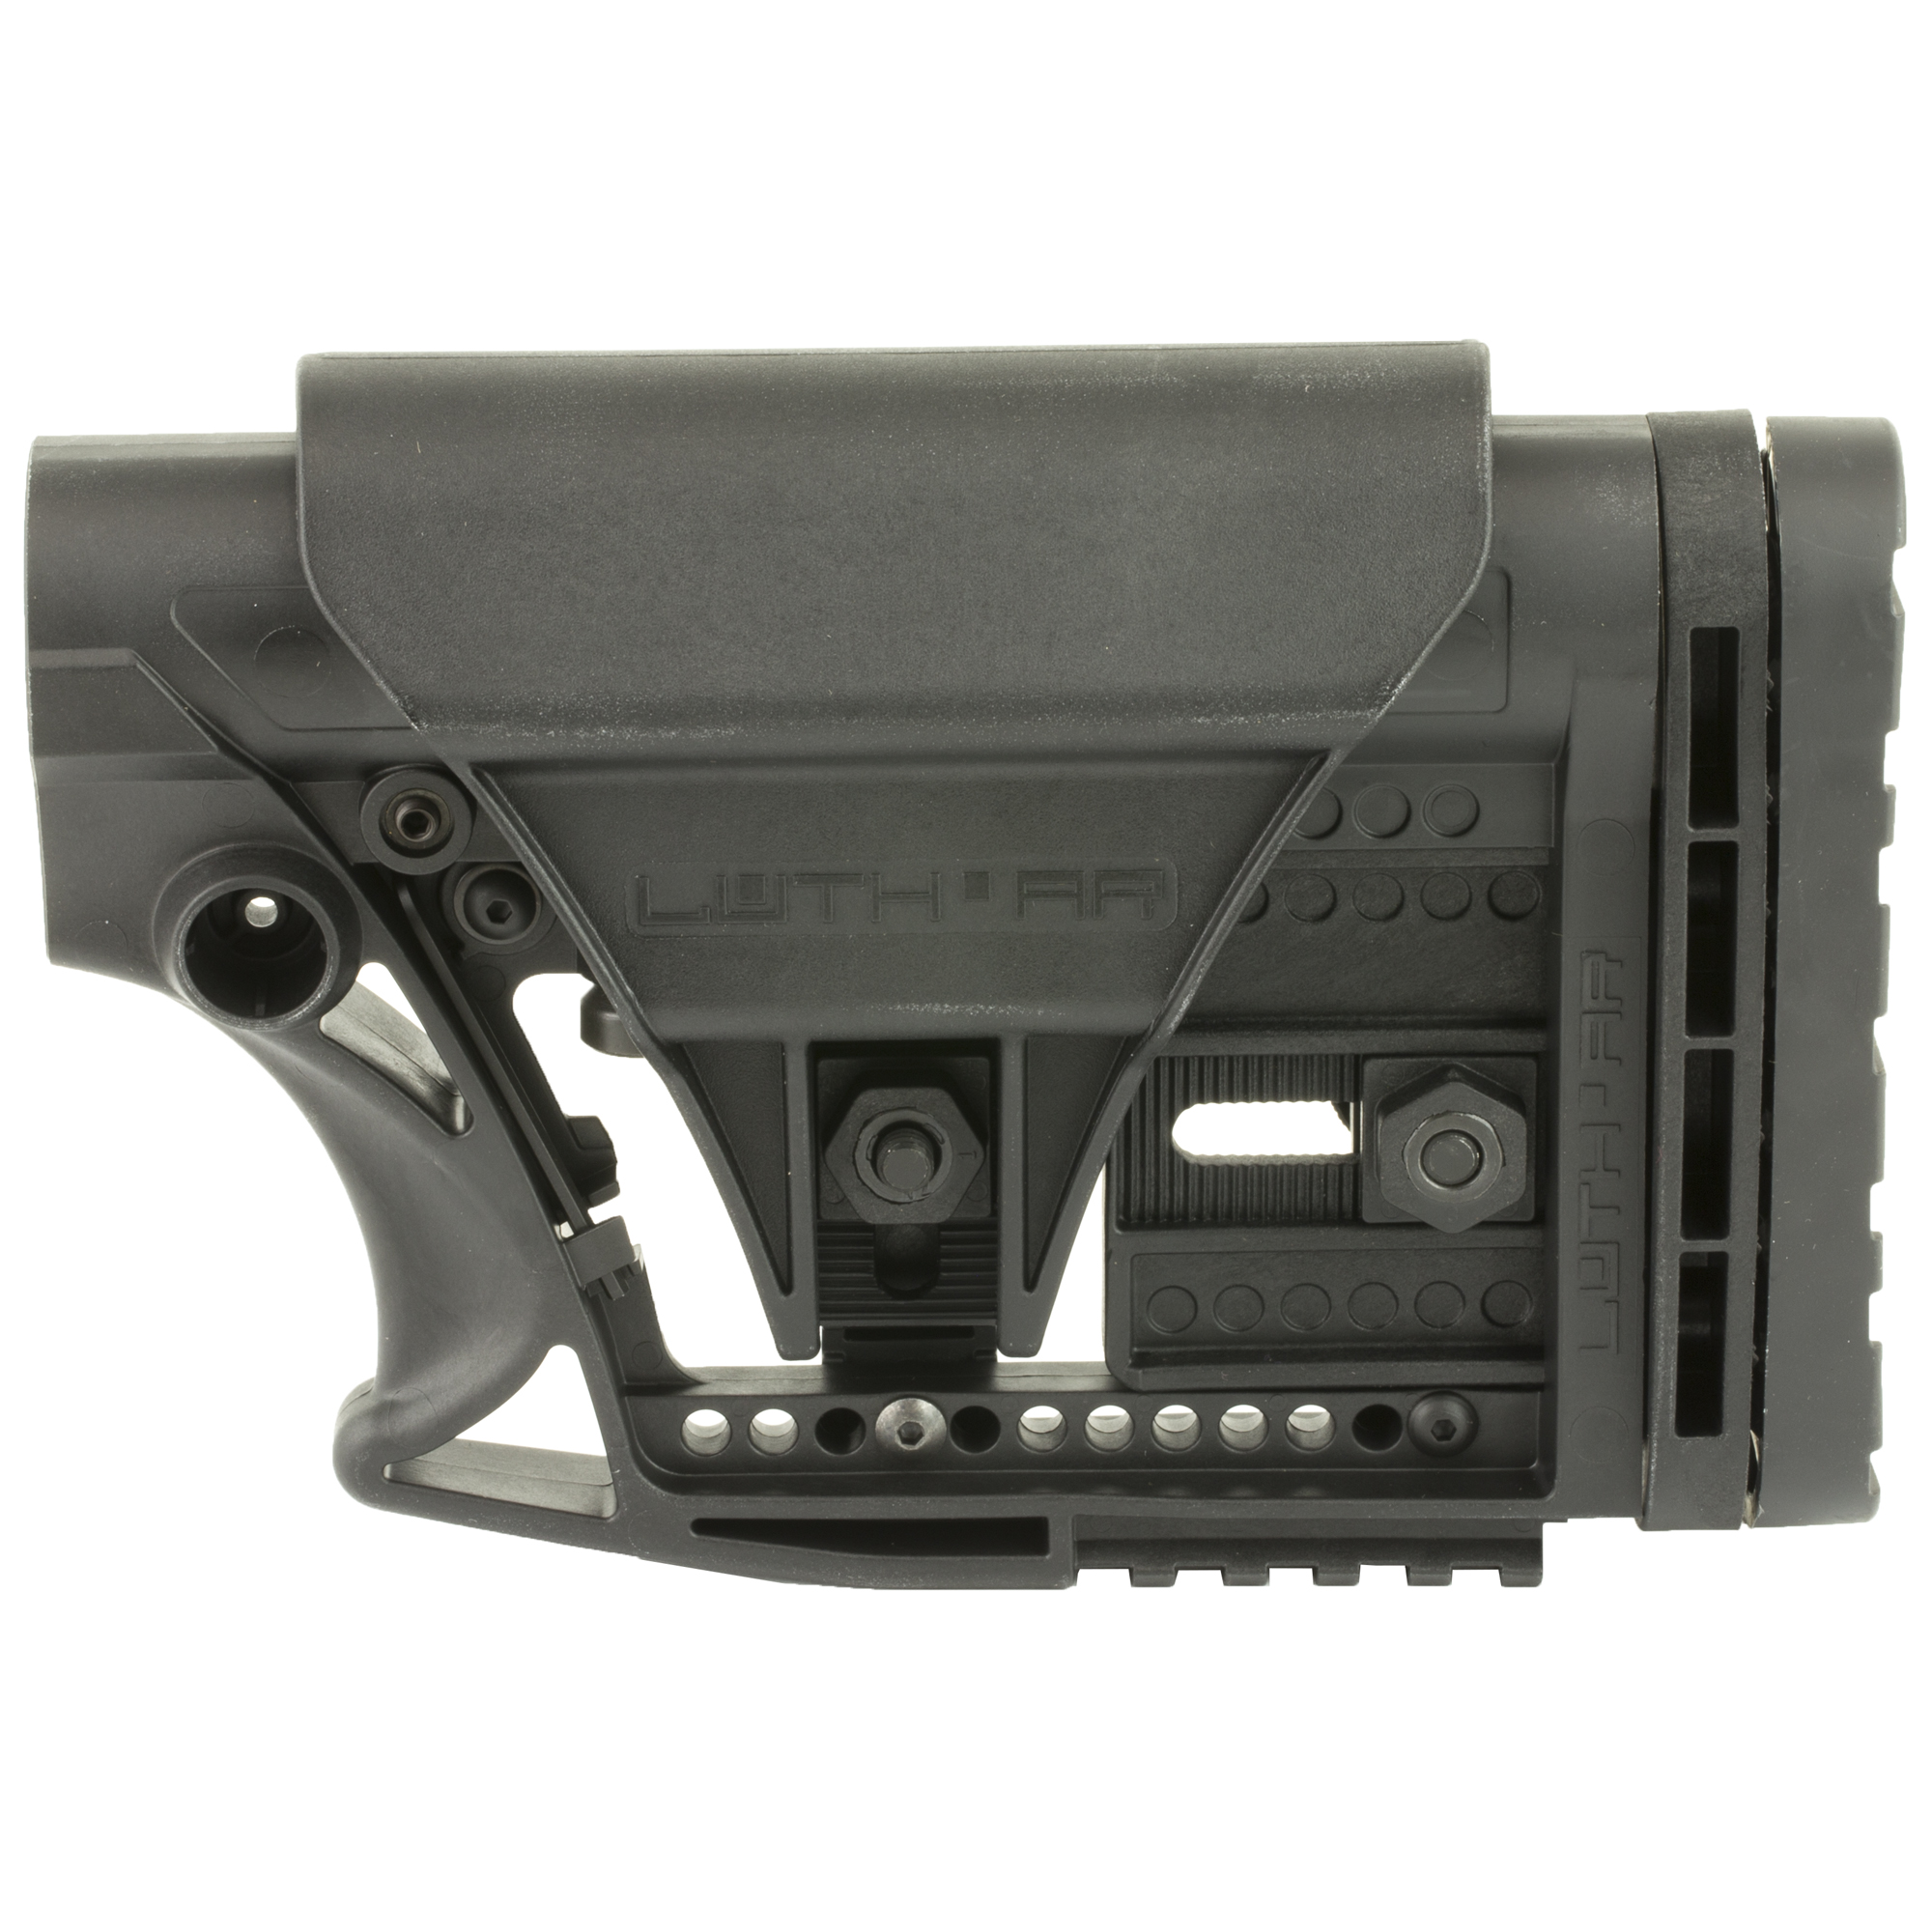 "Luth-AR's MBA-3 Fully Adjustable Carbine Stock Assembly Fits AR-15 & AR-10 Commercial and Mil-Spec Buffer Tubes. It has a 3-axis adjustable butt plate"" a picatinny rail on the bottom rear of the stock body and an adjustable cheek piece. This fits all .223 and most .308 AR carbine style rifles. It is constructed of strong glass filled nylon and is easy to replace and quick to install."